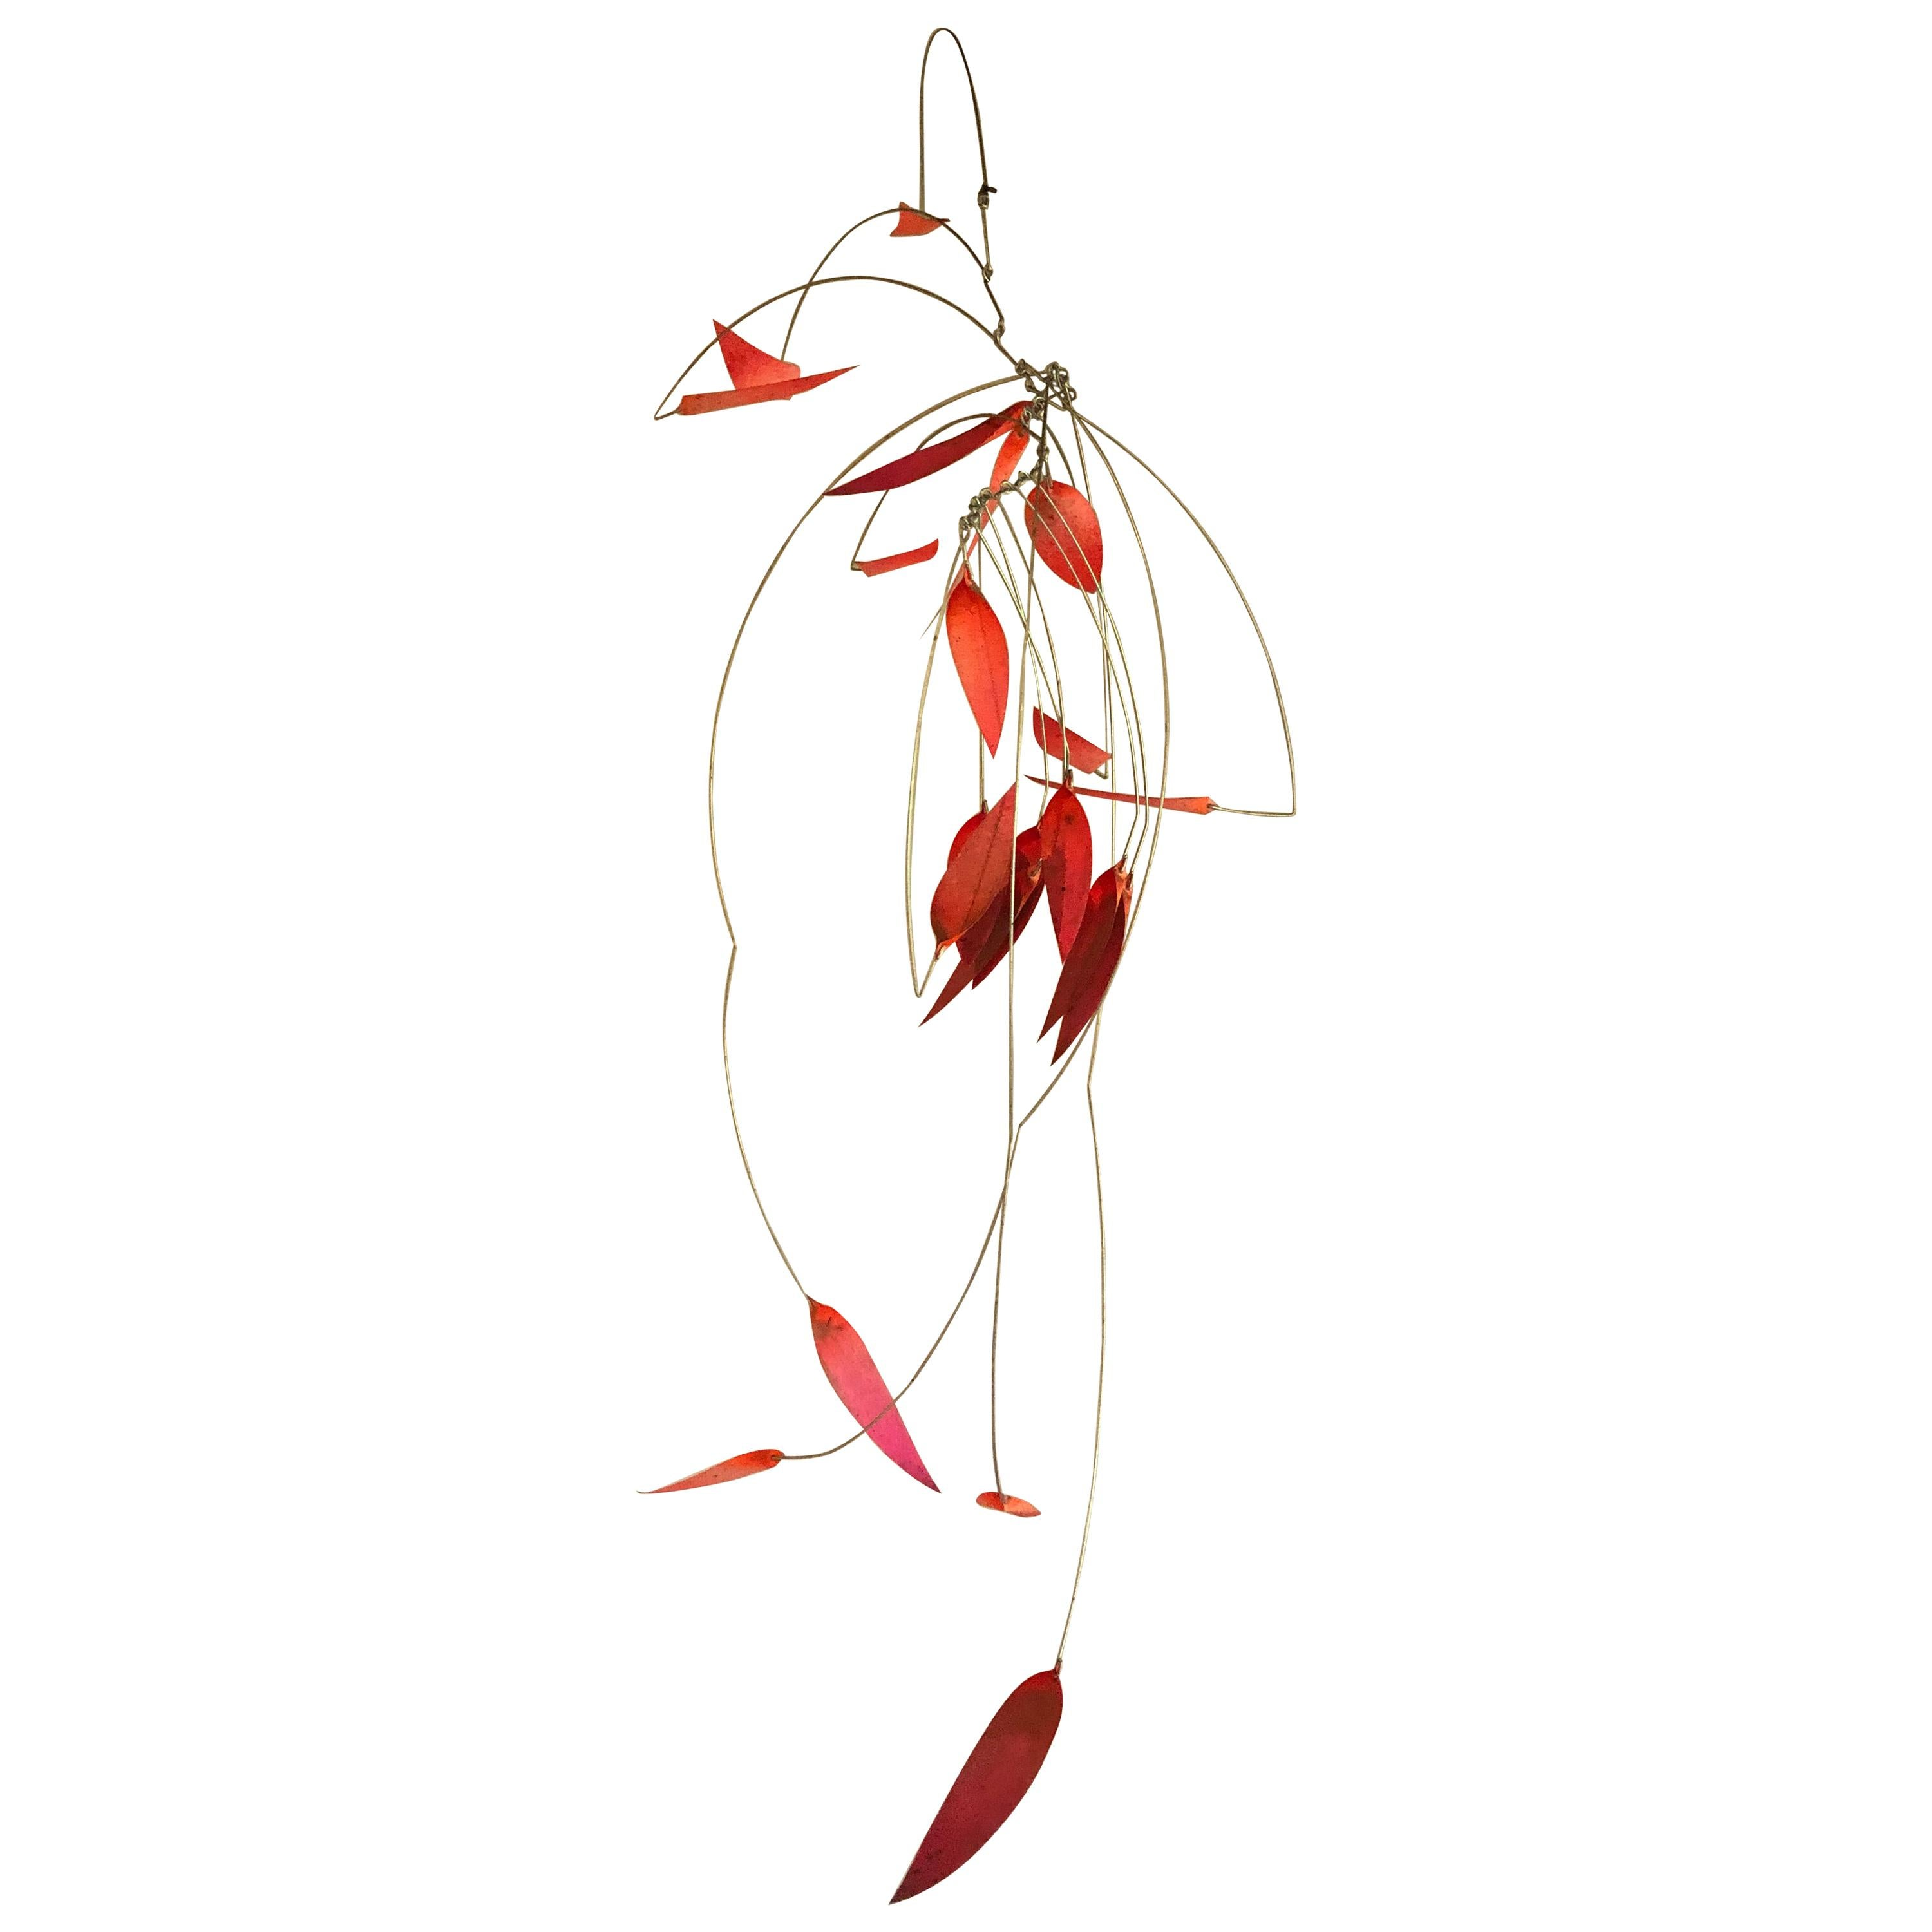 Mid-Century Modern Kinetic Mobile Sculpture in Red